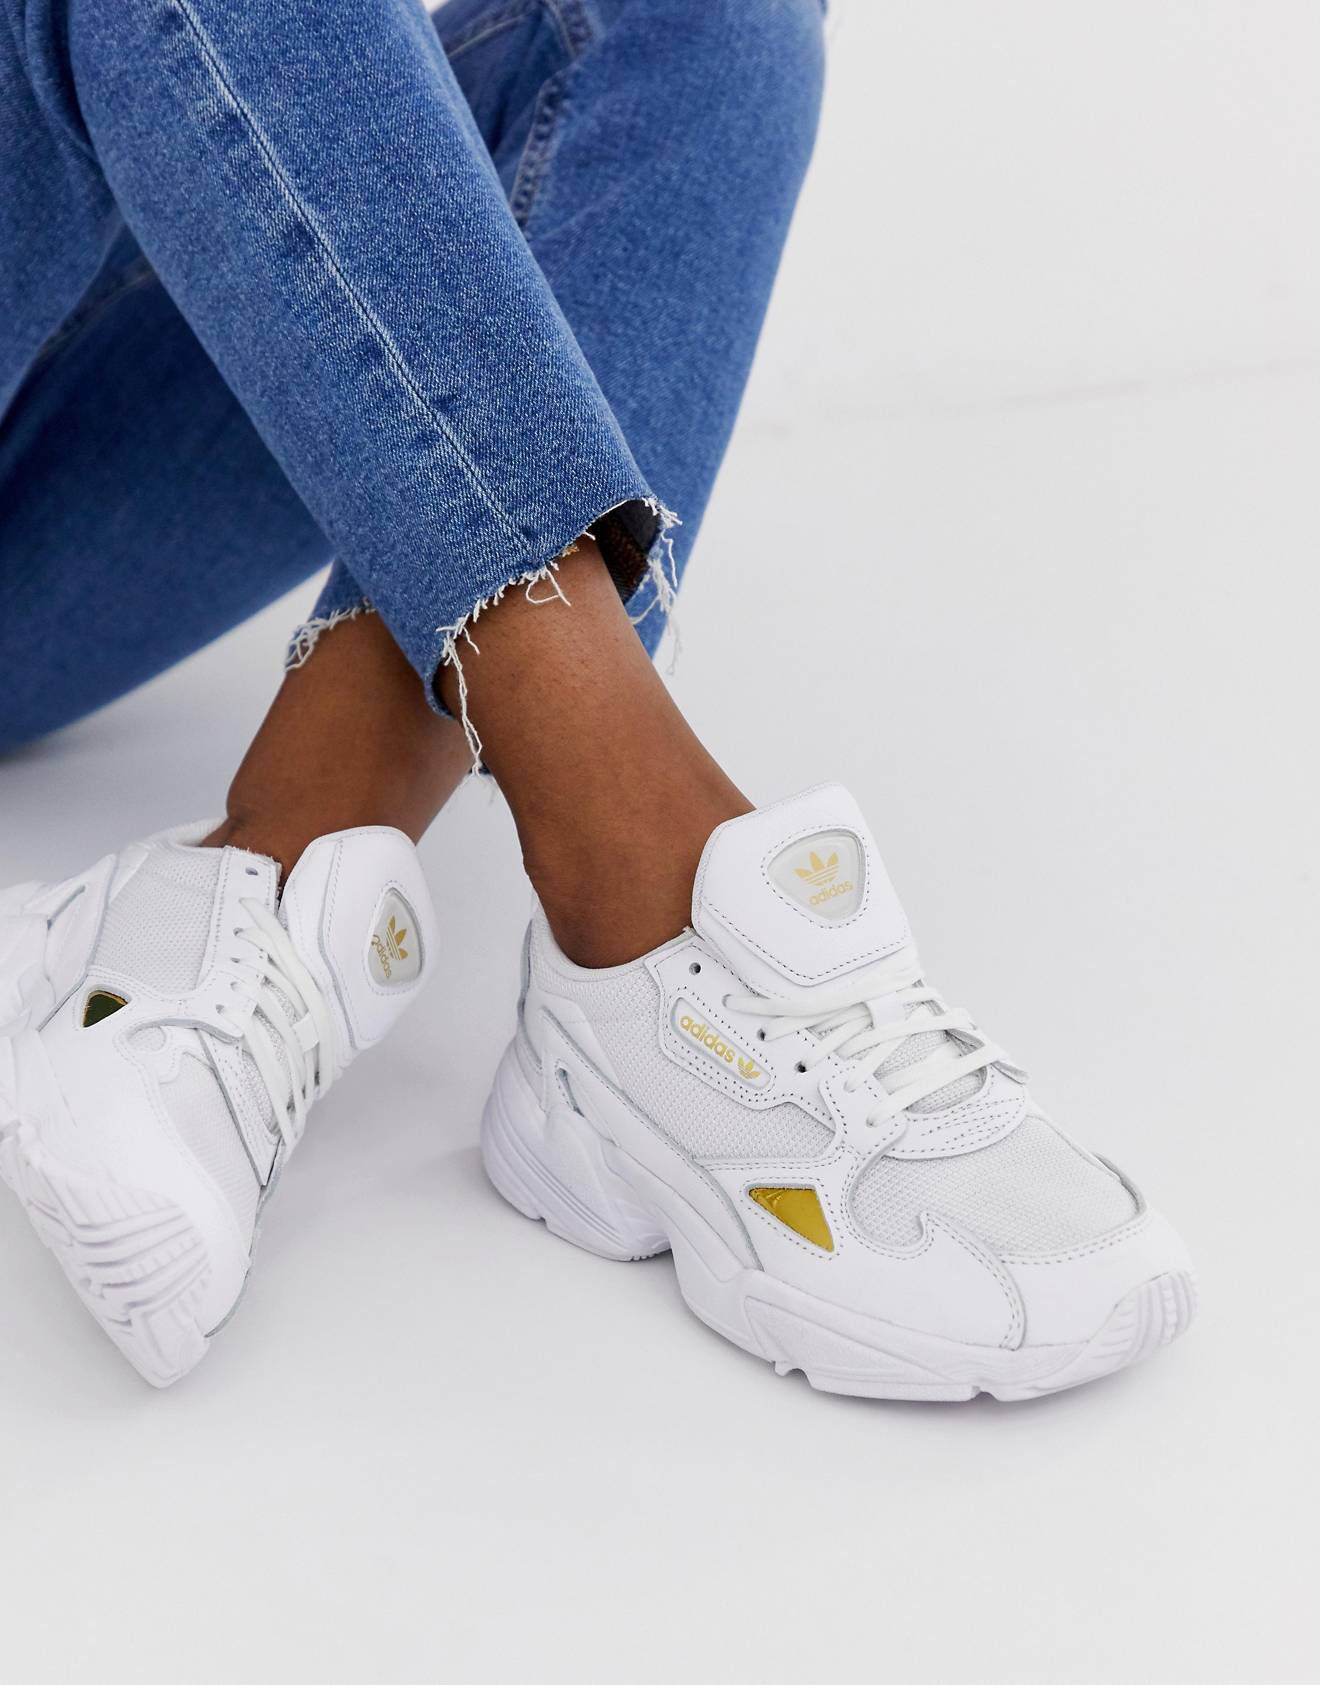 pretty nice 12057 c401c adidas Originals - Falcon - Baskets - Blanc et or. Just when I thought I  didn t need something new from ASOS, I kinda do